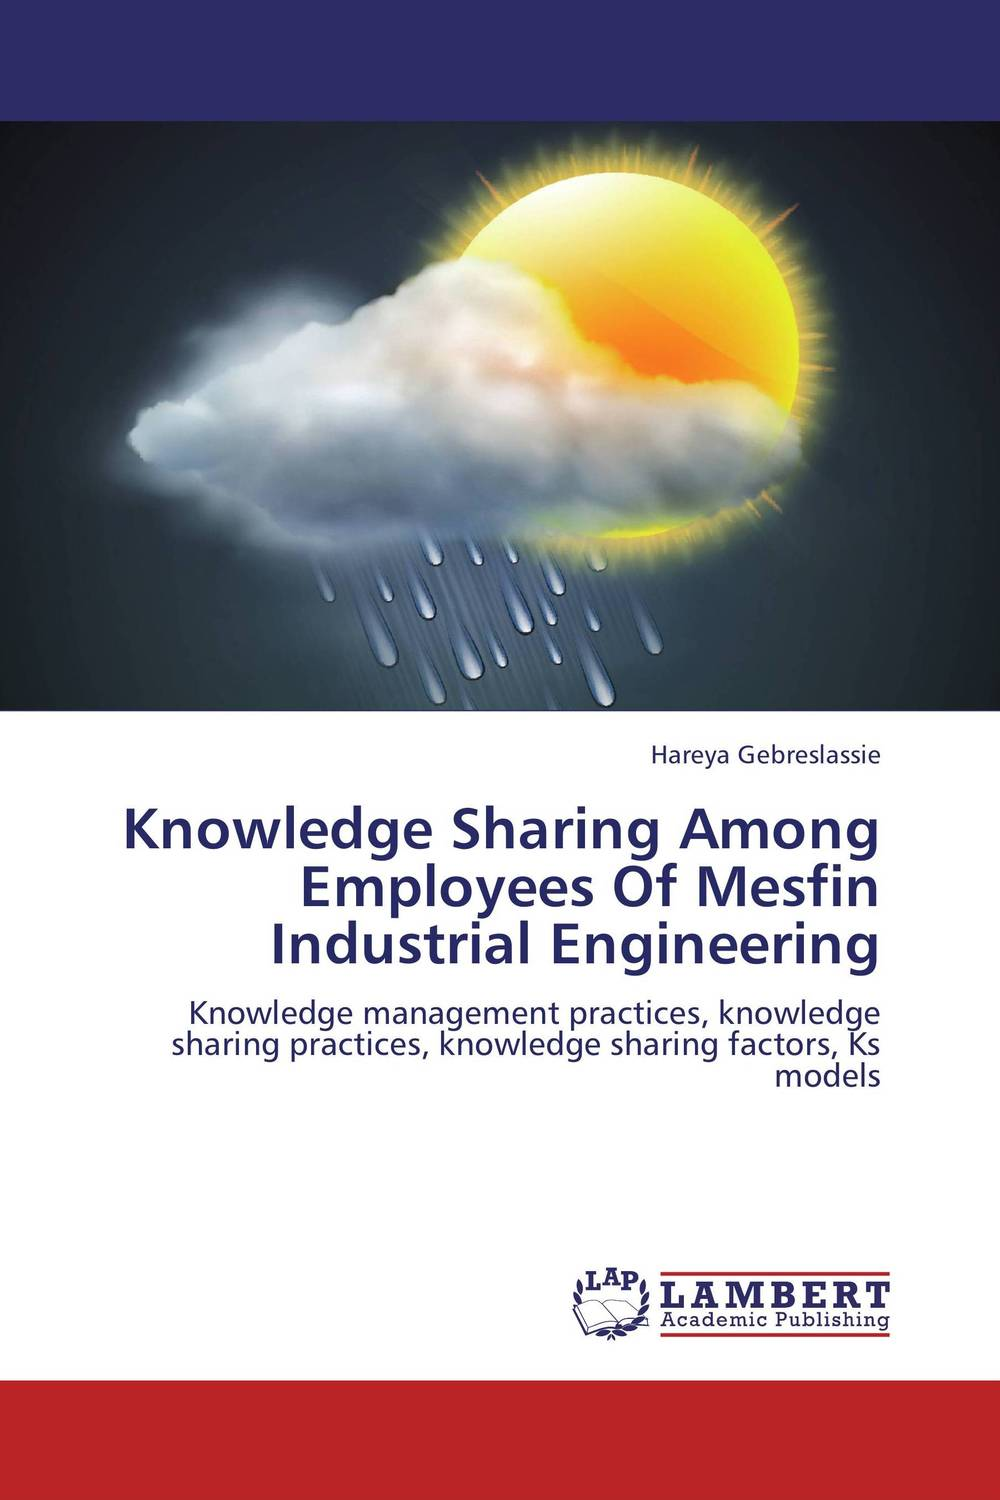 Knowledge Sharing Among Employees Of Mesfin Industrial Engineering retaining your valuable knowledge employees